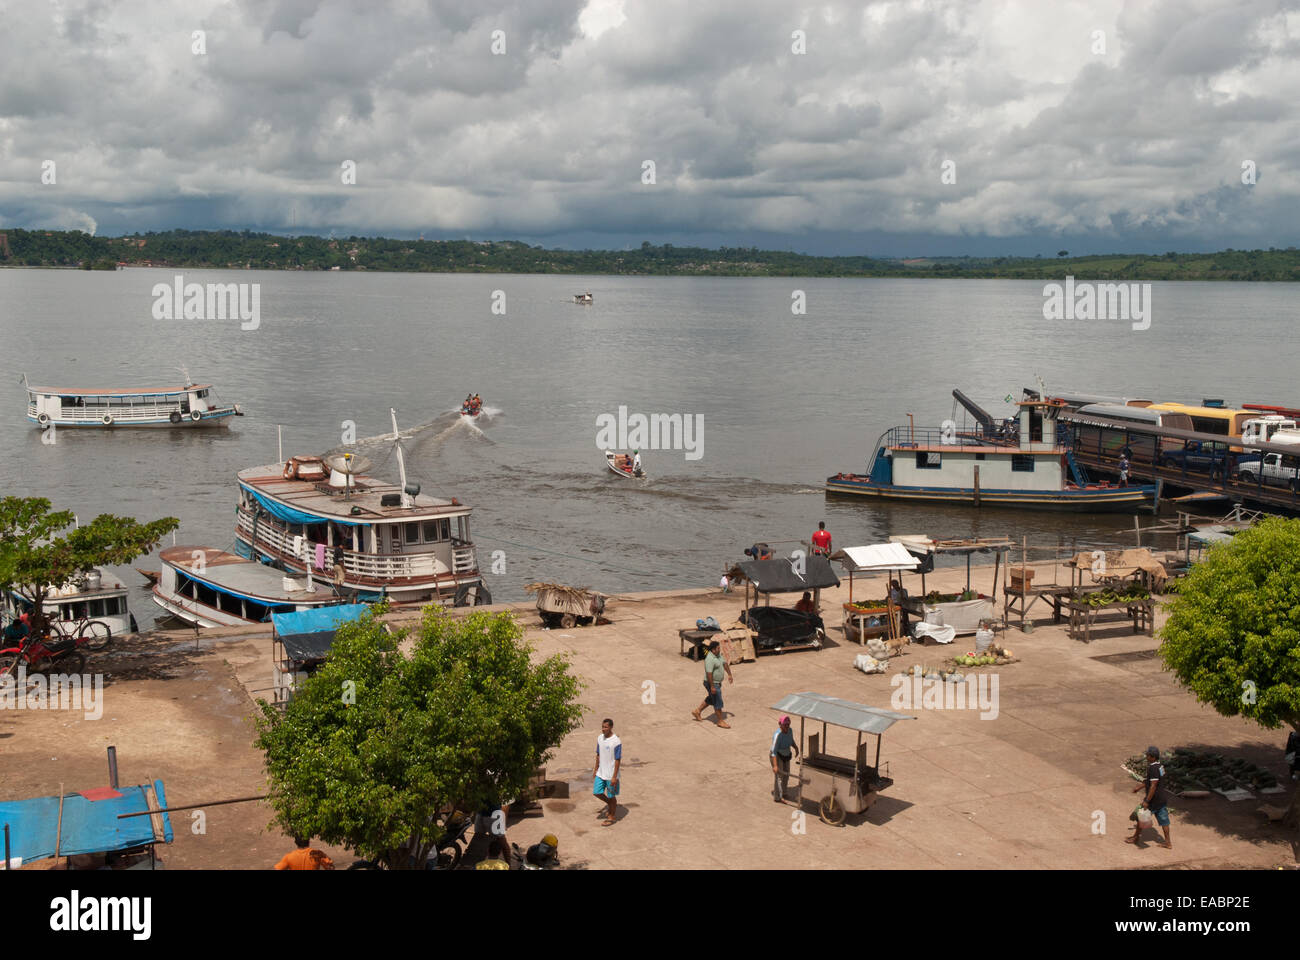 Itaituba, Amazon, Tapajos river, Para State, Brazil. Quay at the port with riverboats, street vendors and a ferry - Stock Image